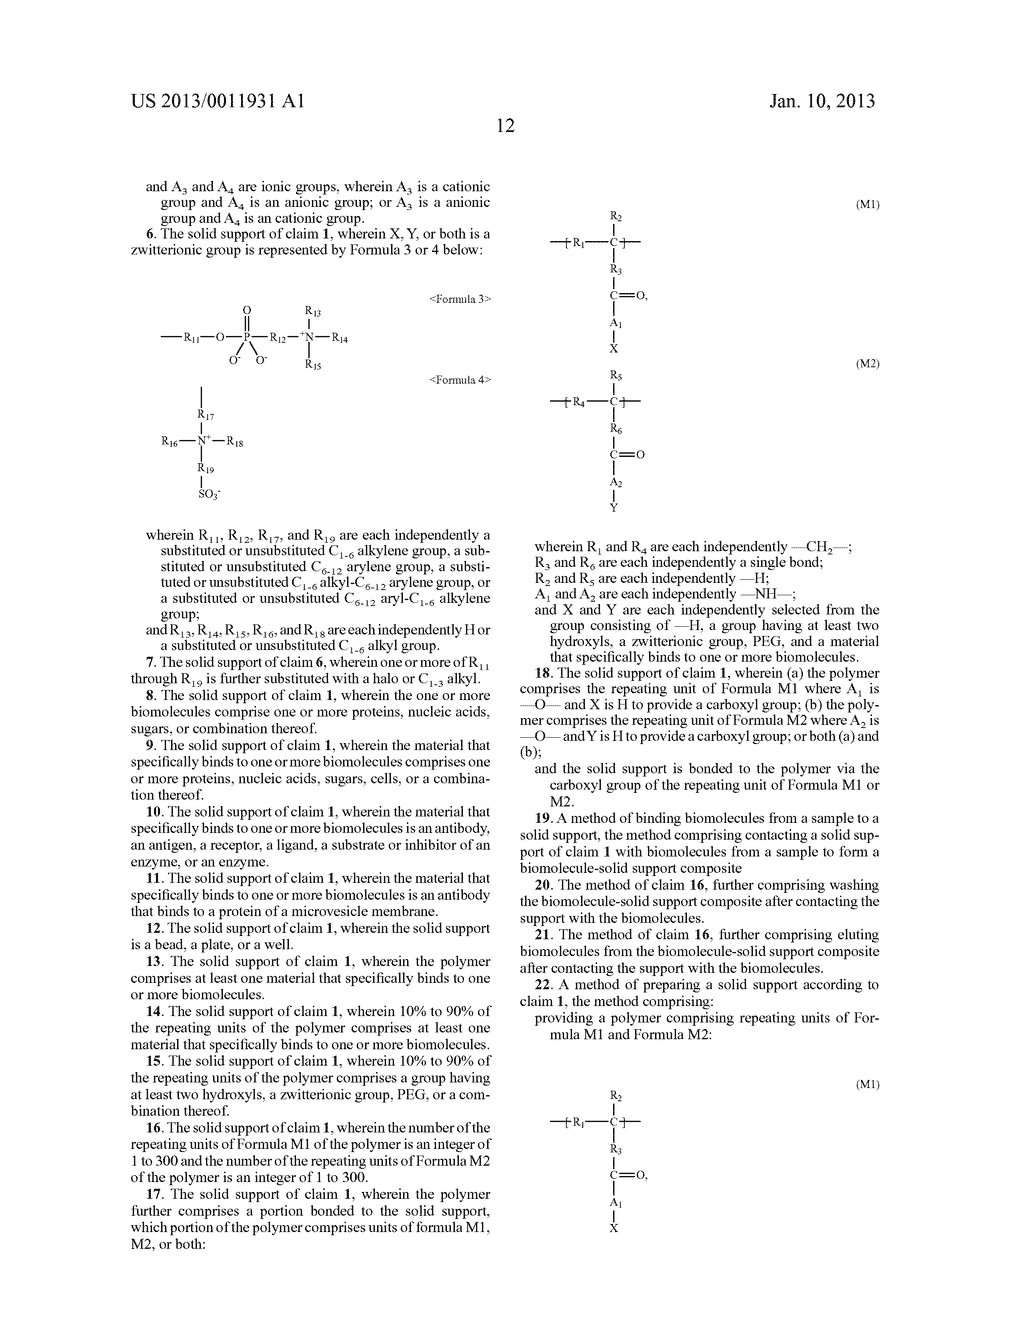 POLYMER INCLUDING GROUP HAVING AT LEAST TWO HYDROXYLS OR ZWITTERIONIC     GROUP AND USE THEREOF - diagram, schematic, and image 15